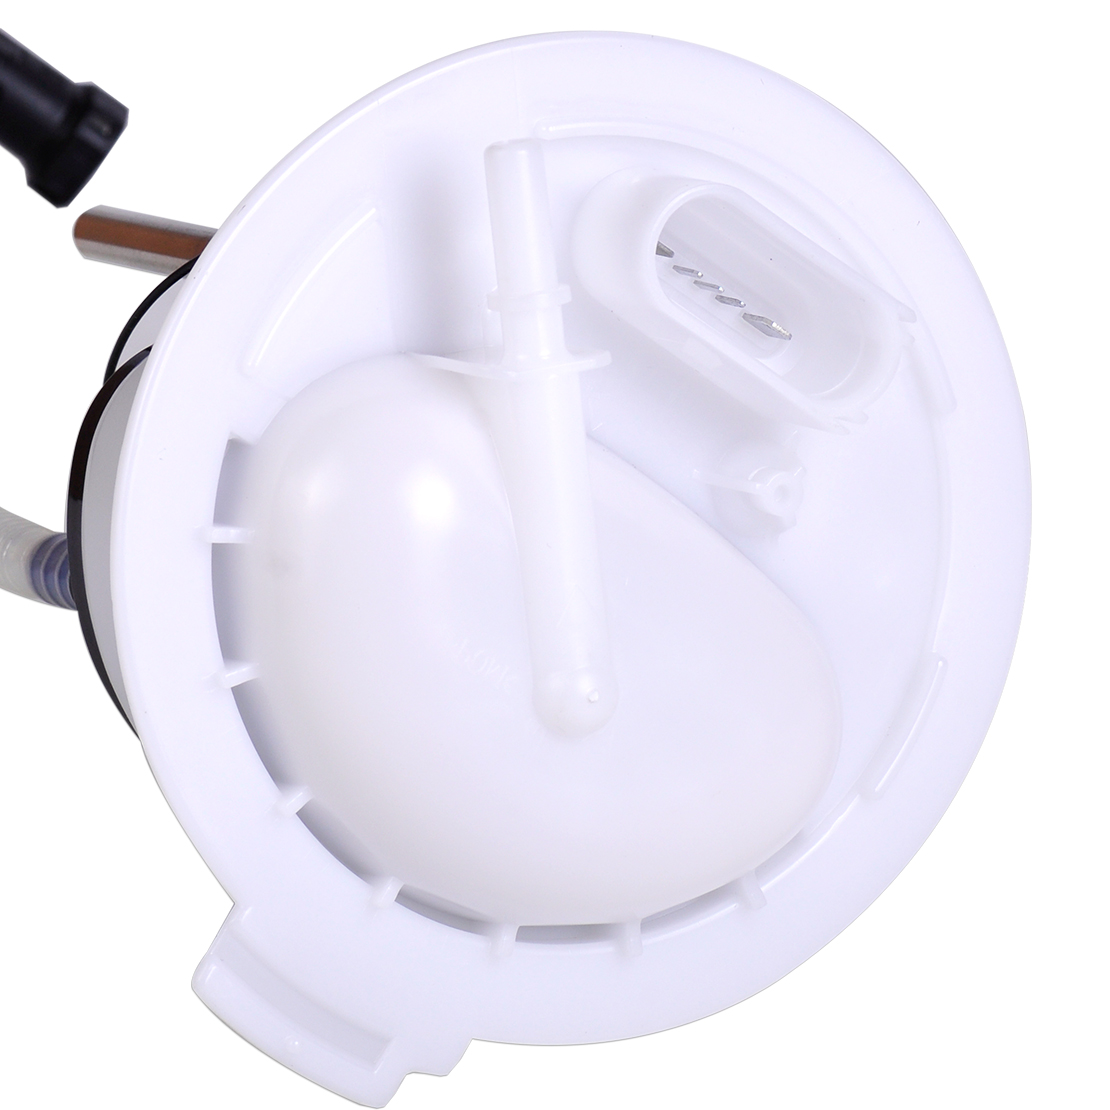 Citall Car Front Electronic Fuel Filter Pump Core 3c0919679a For Vw 81 Subaru Gl Location Passat B6 B7 2006 2014 Cc 2012 2013 18tsi 20tfsi In Air Filters From Automobiles